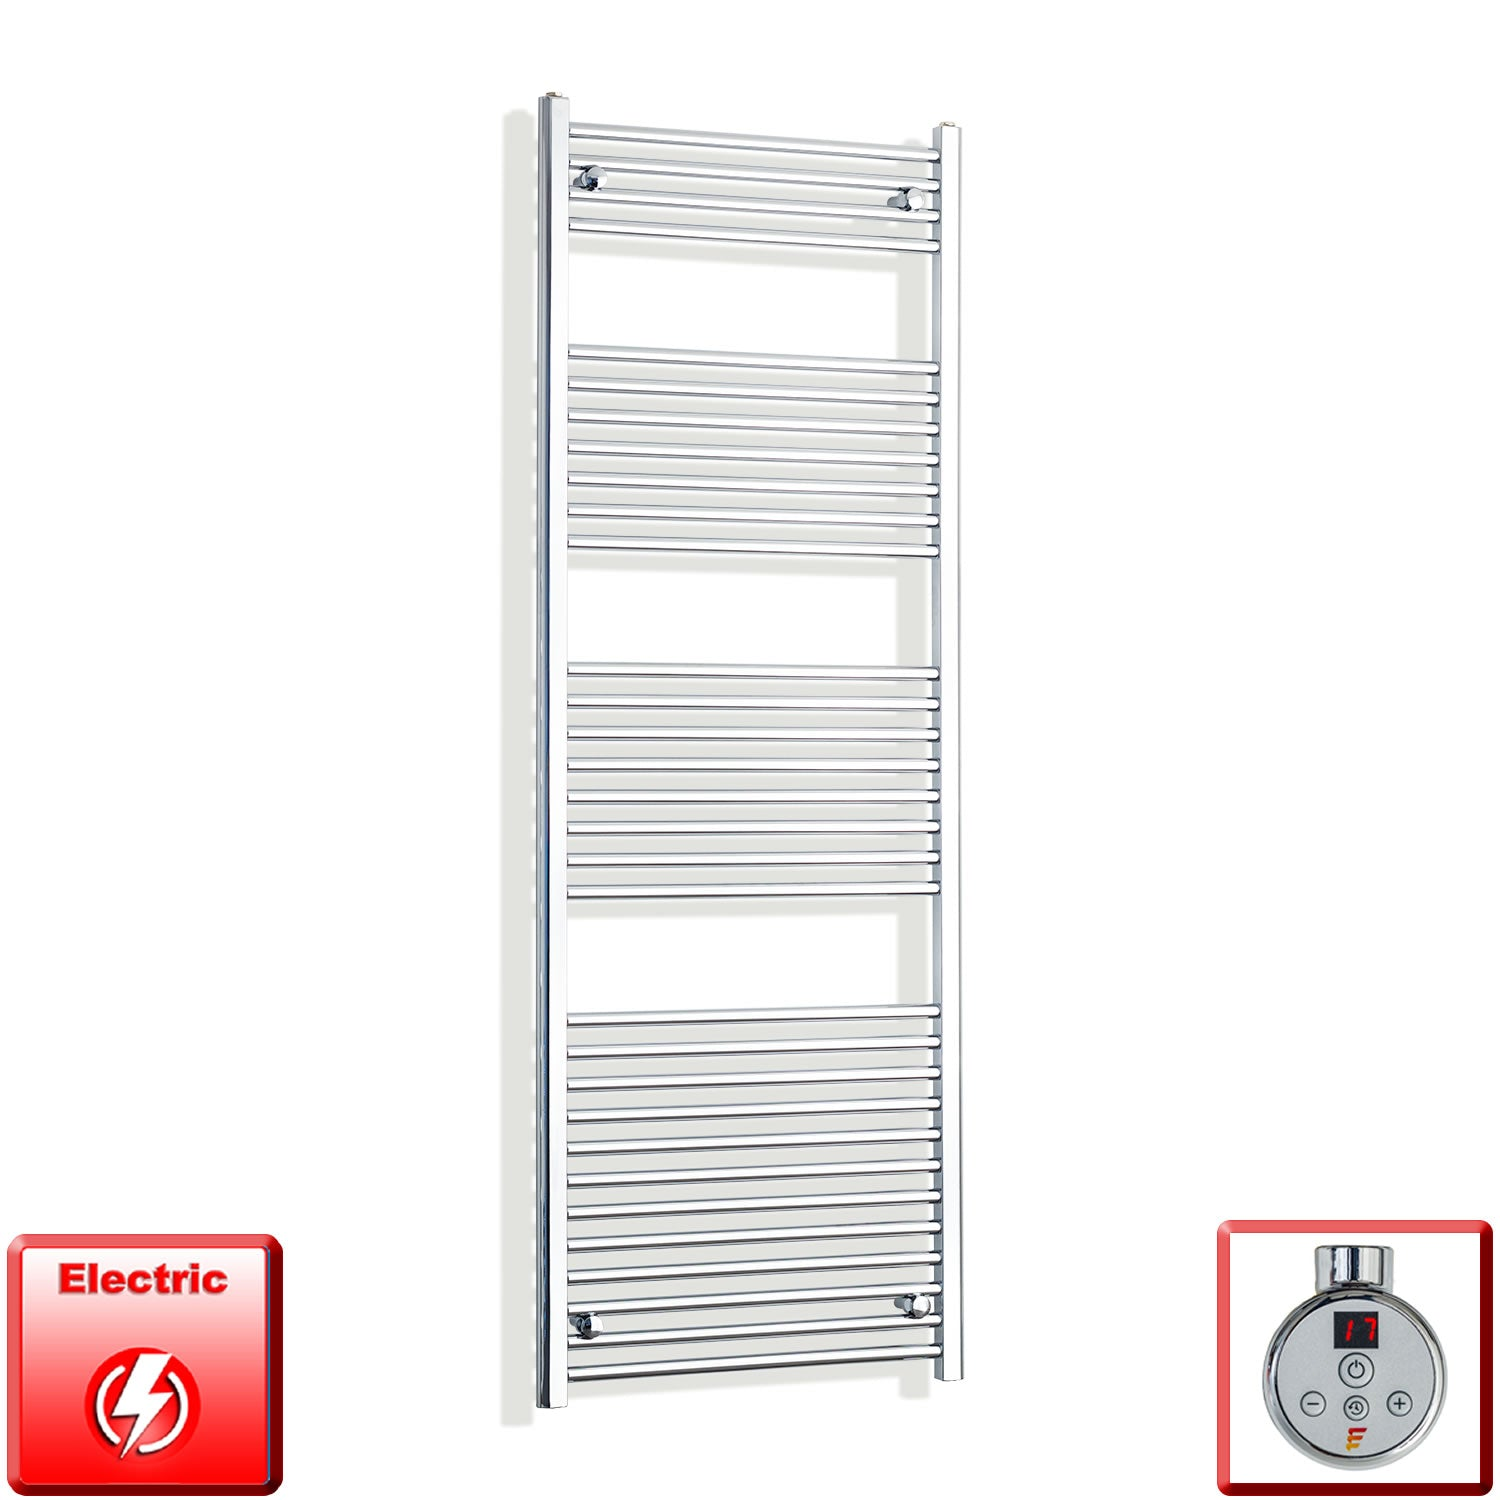 650mm Wide 1800mm High Pre-Filled Chrome Electric Towel Rail Radiator With Thermostatic DIGI Element